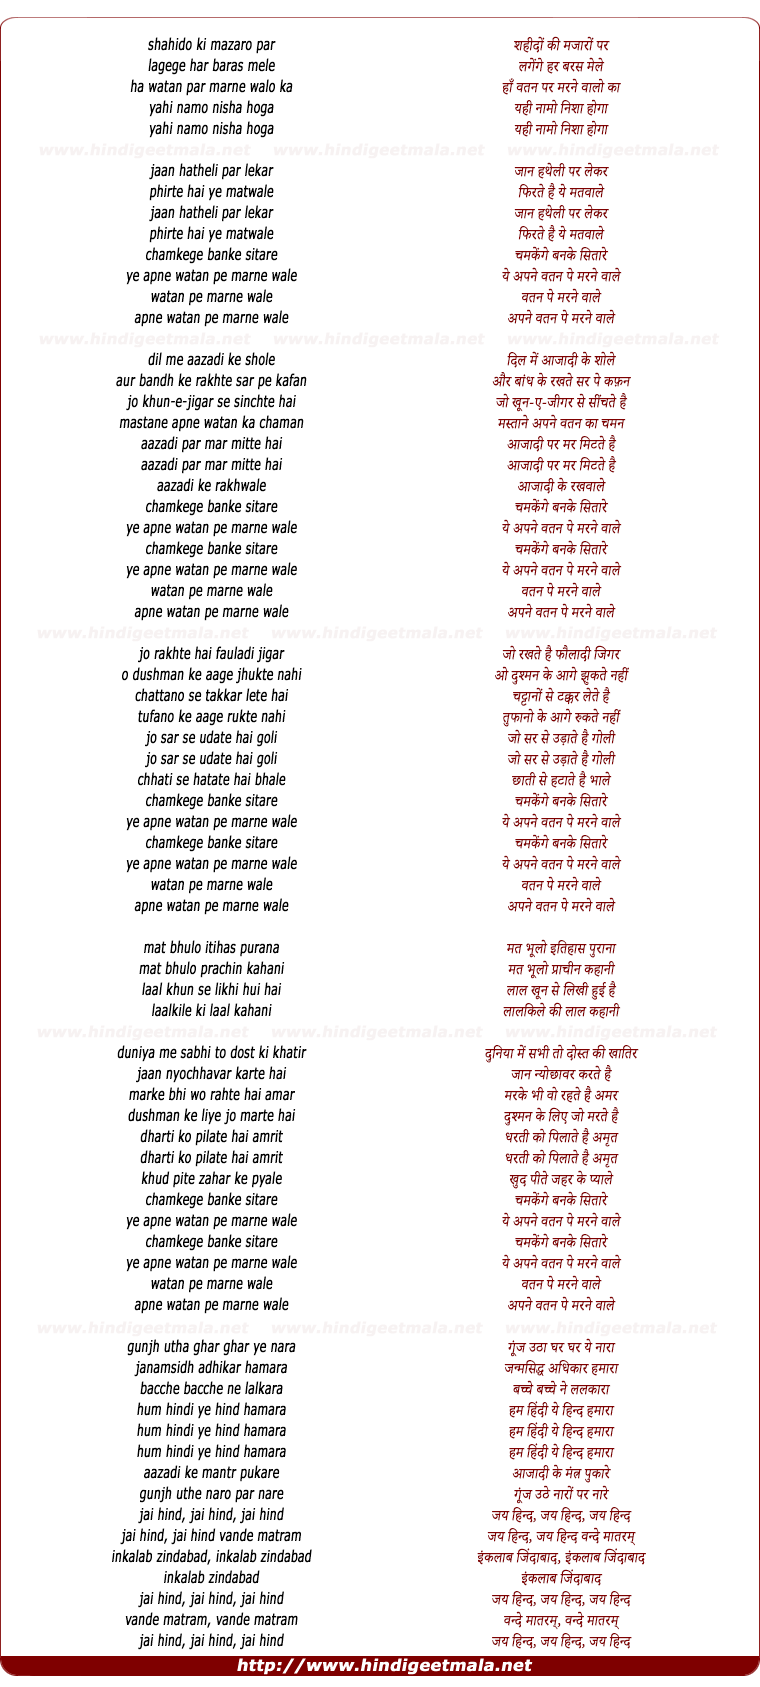 lyrics of song Jaan Hatheli Par Lekar Firte Hai Ye Matwale